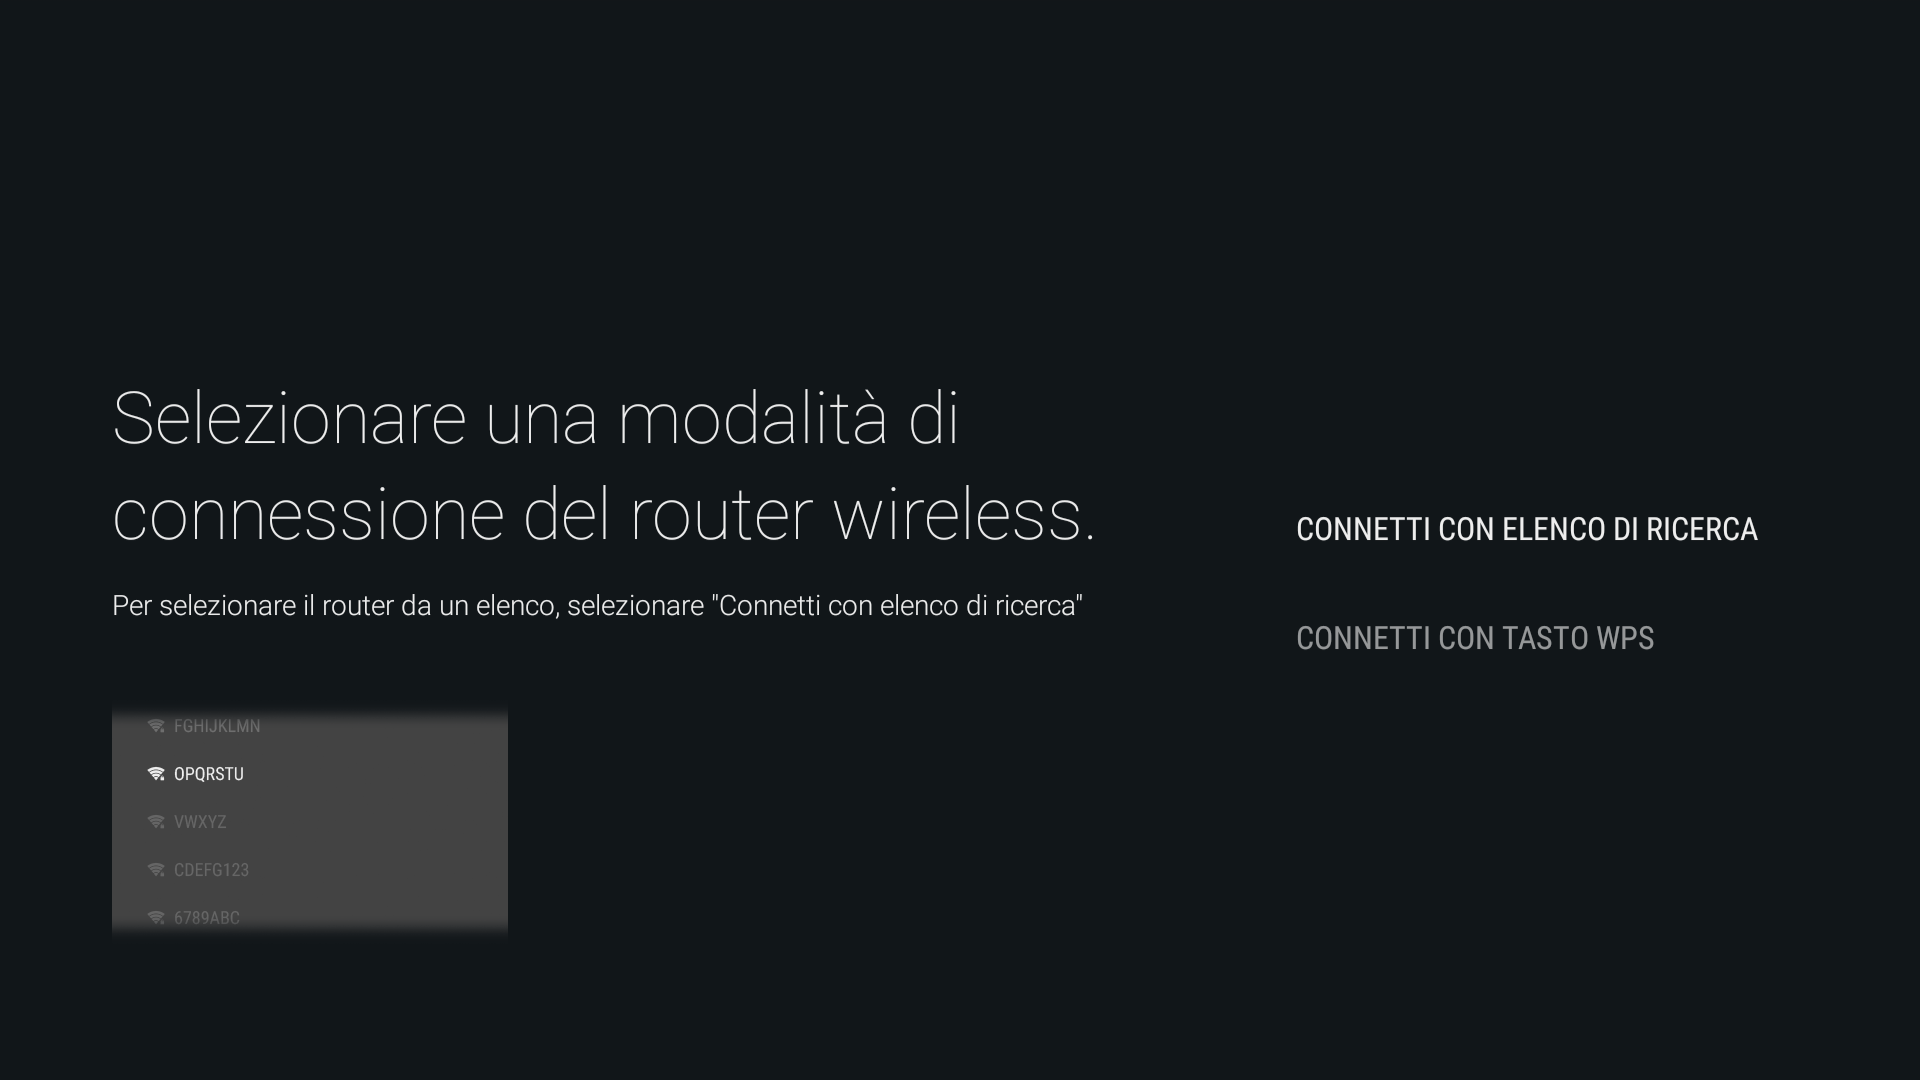 Android - Connect by scan list (Android - Connessione tramite elenco scansione)